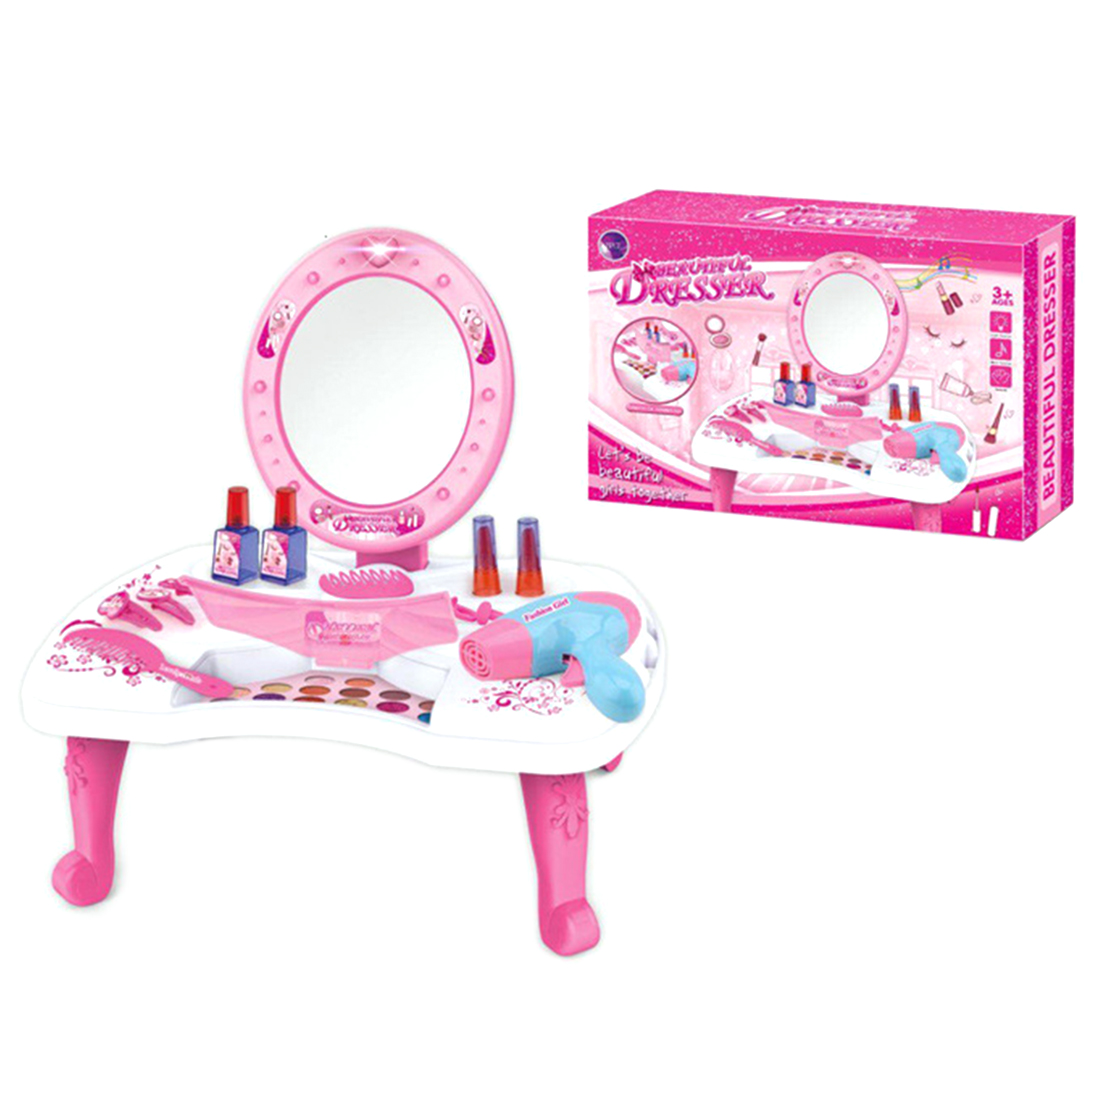 26Pcs Children Pretend Play Dressing Table Toy Girl Cosmetics Playset Makeup Toys For Girl Set Children Kids Birthday Gift